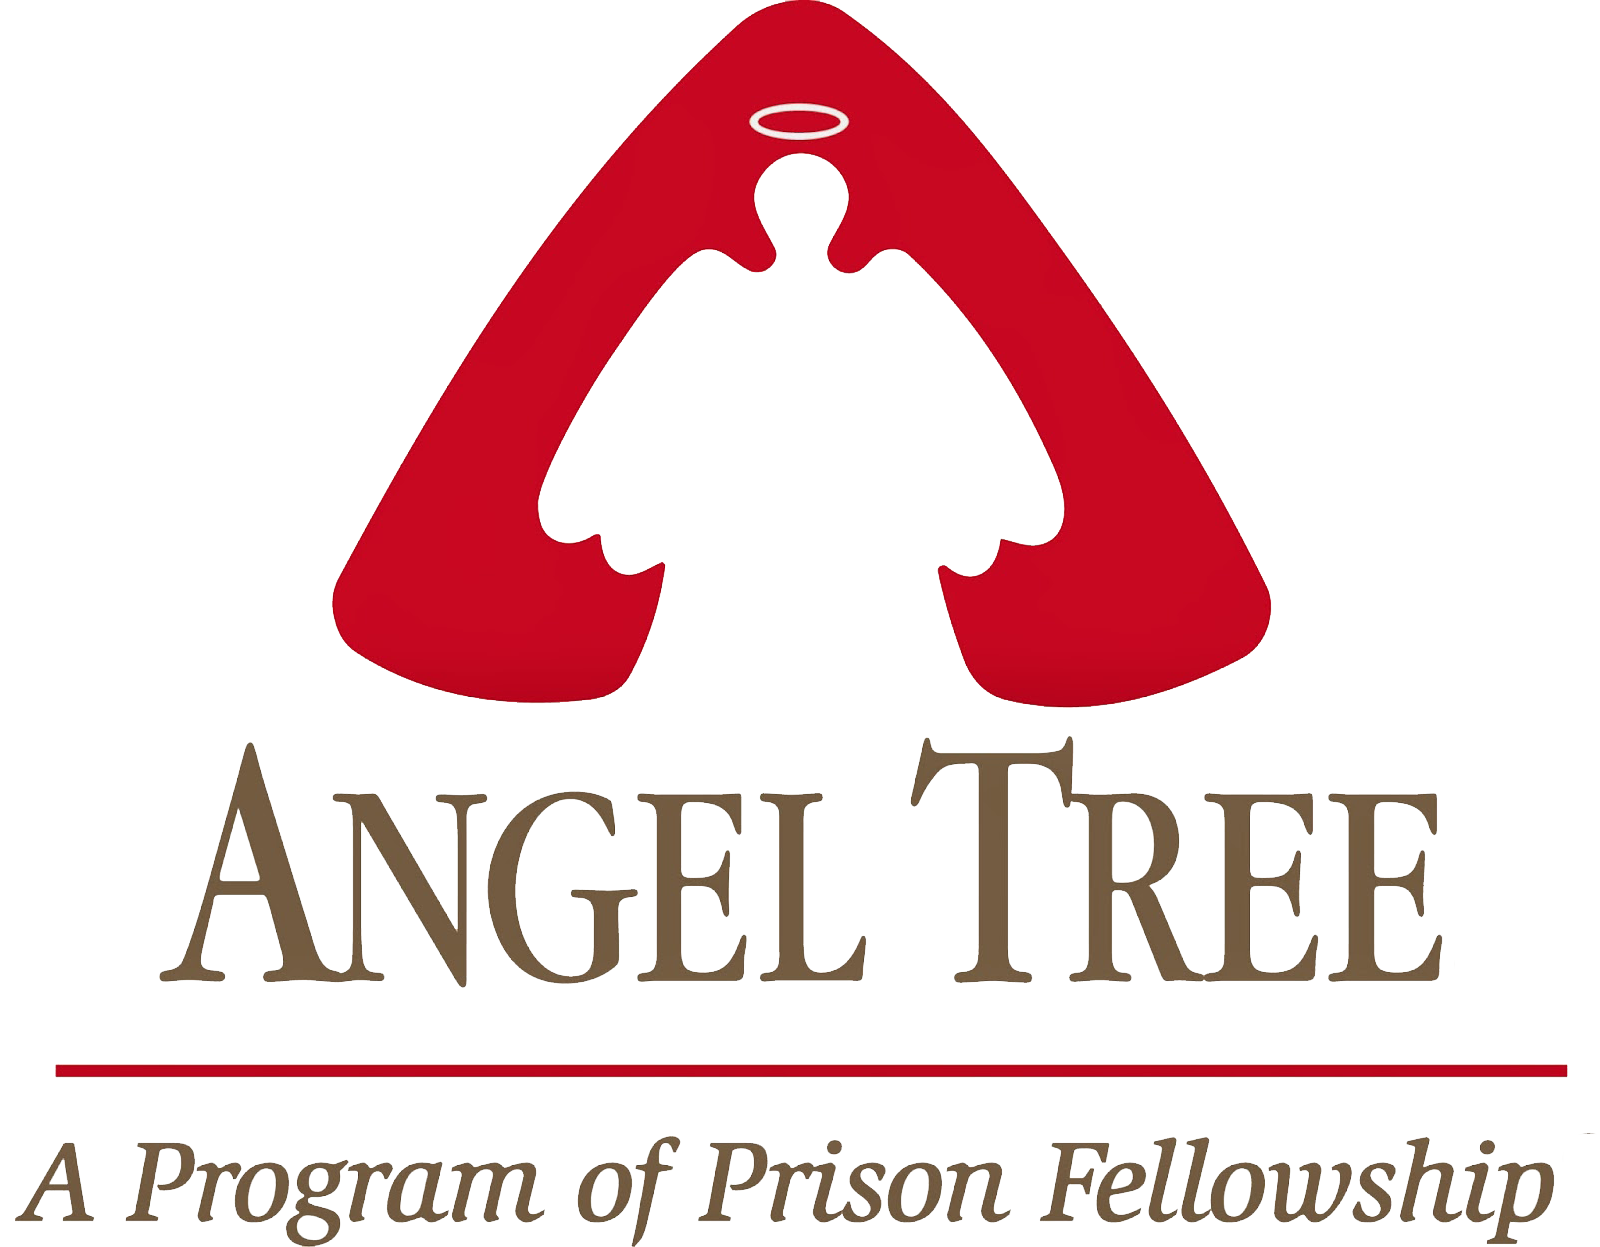 Angel Tree Real Logo   Angel Chapil Logo Png - Angel Souvenirs, Transparent background PNG HD thumbnail